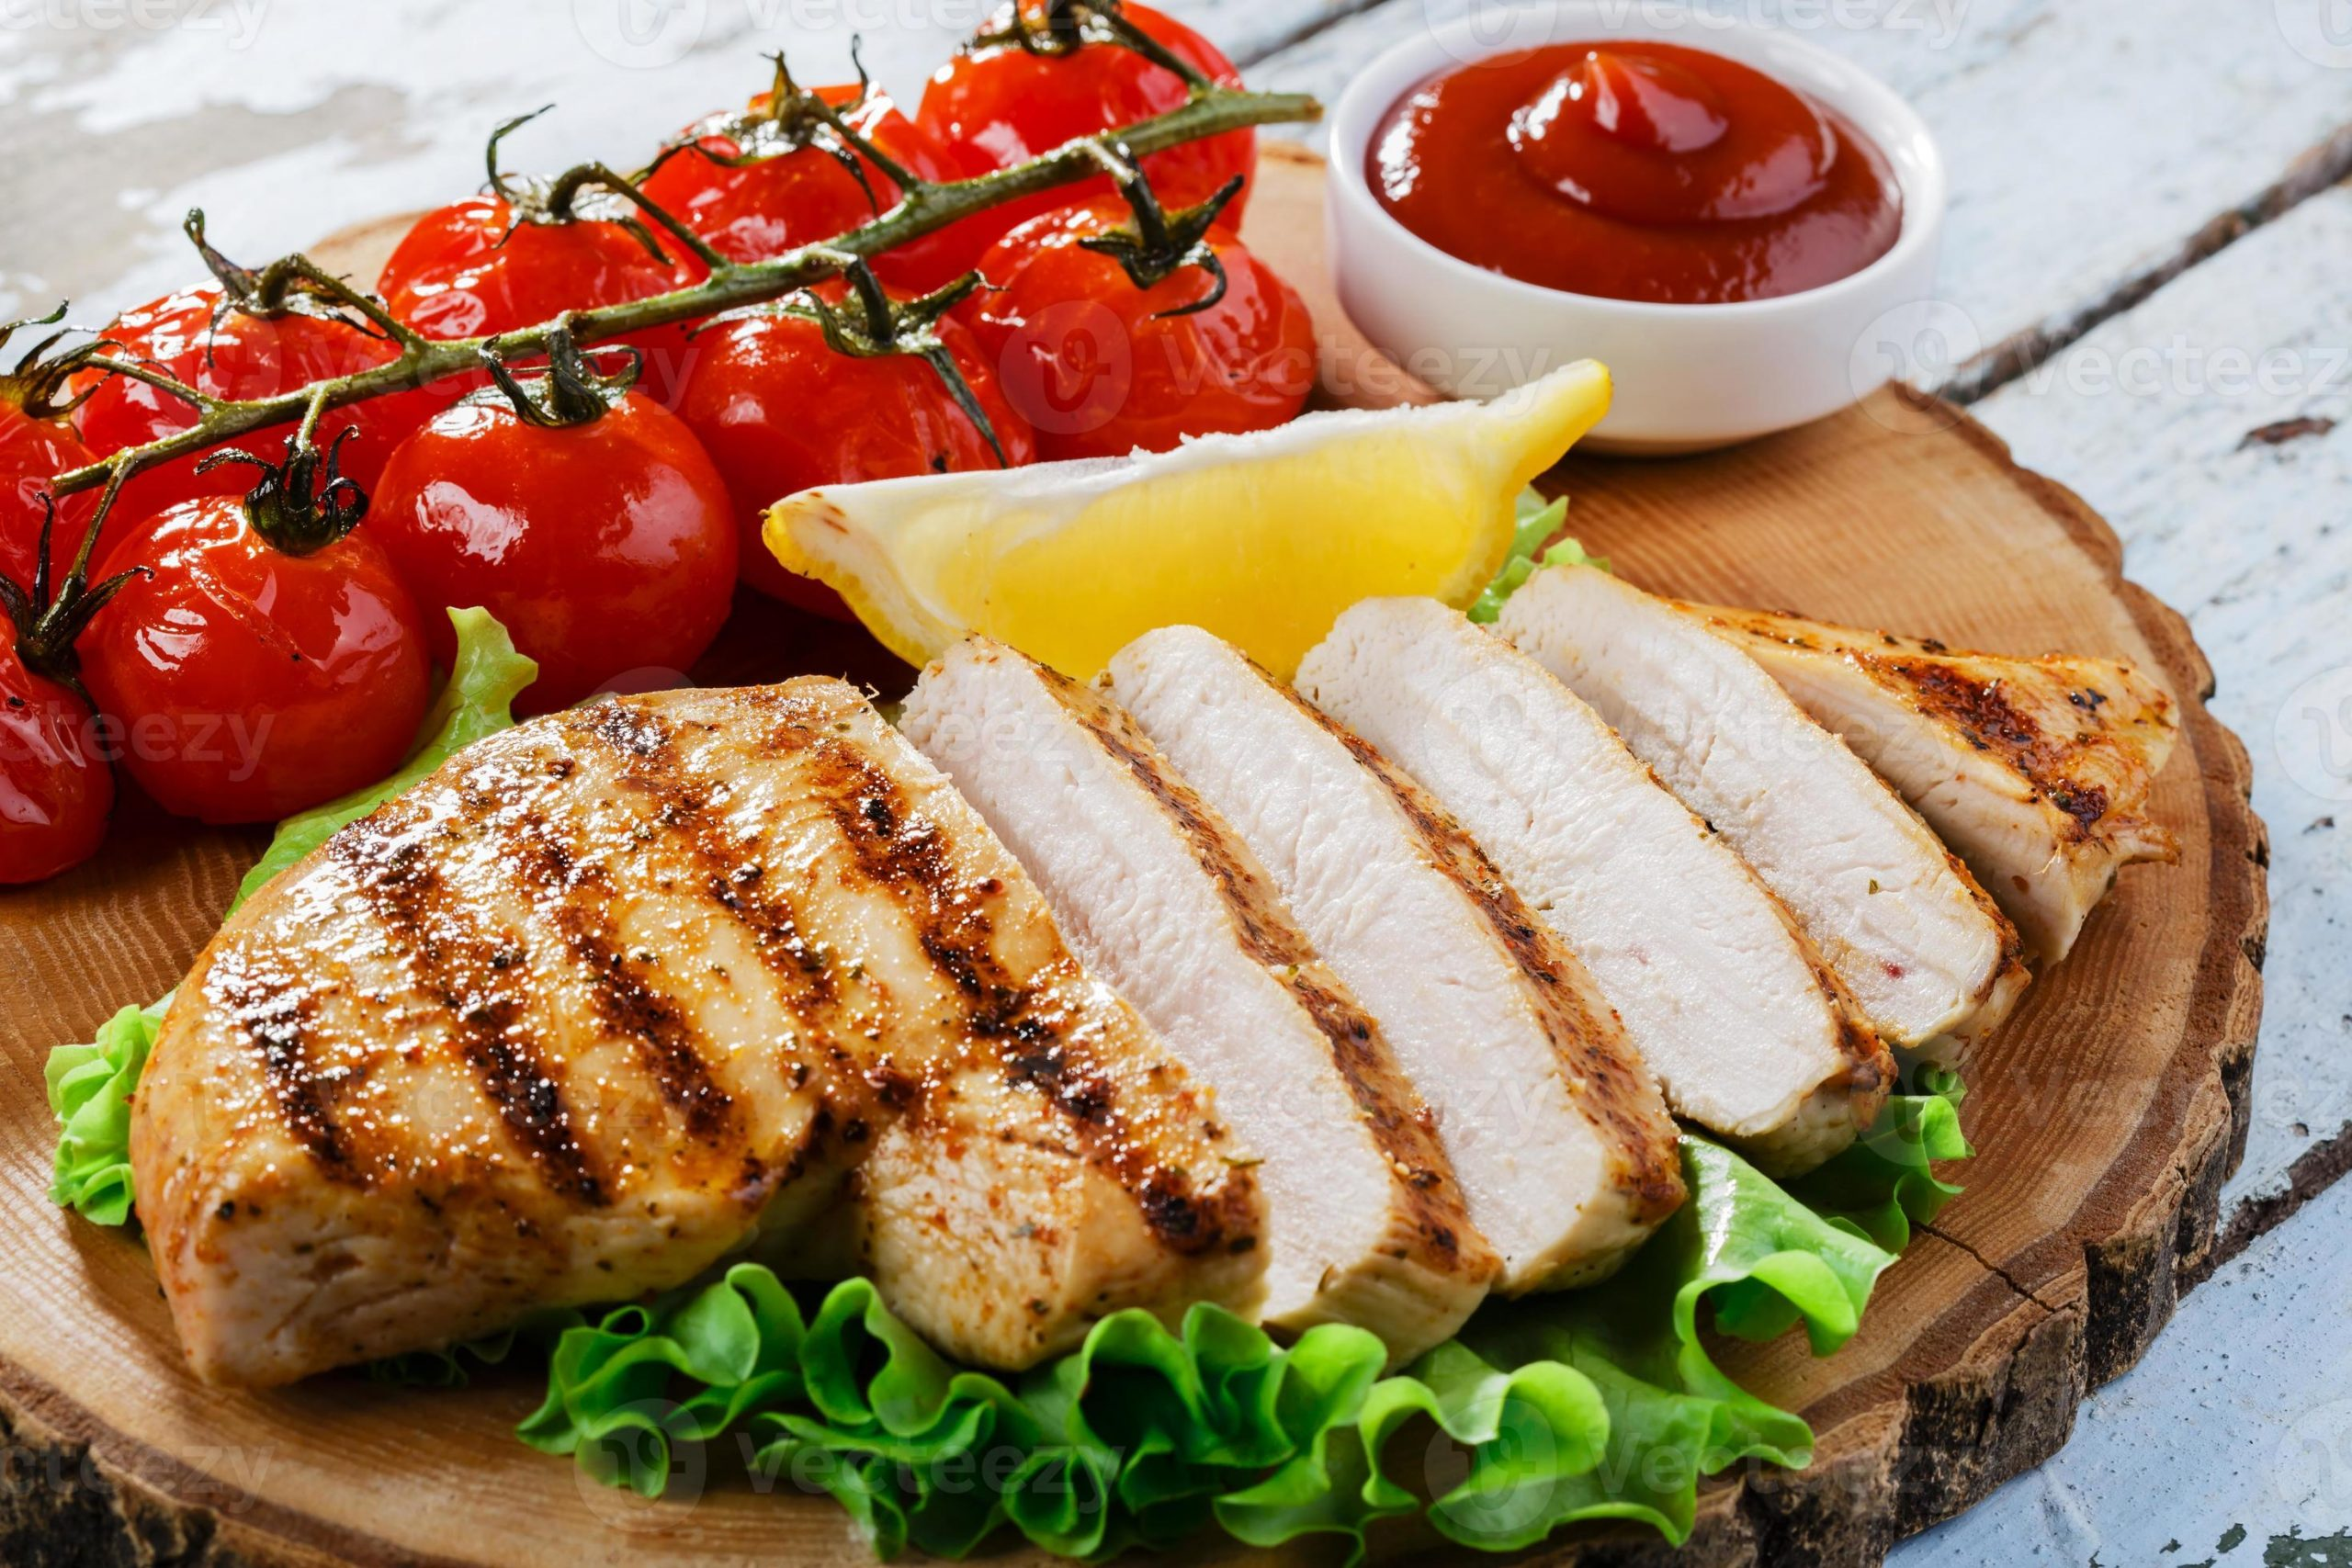 Chicken breasts recipe with vegetable sauce 2022